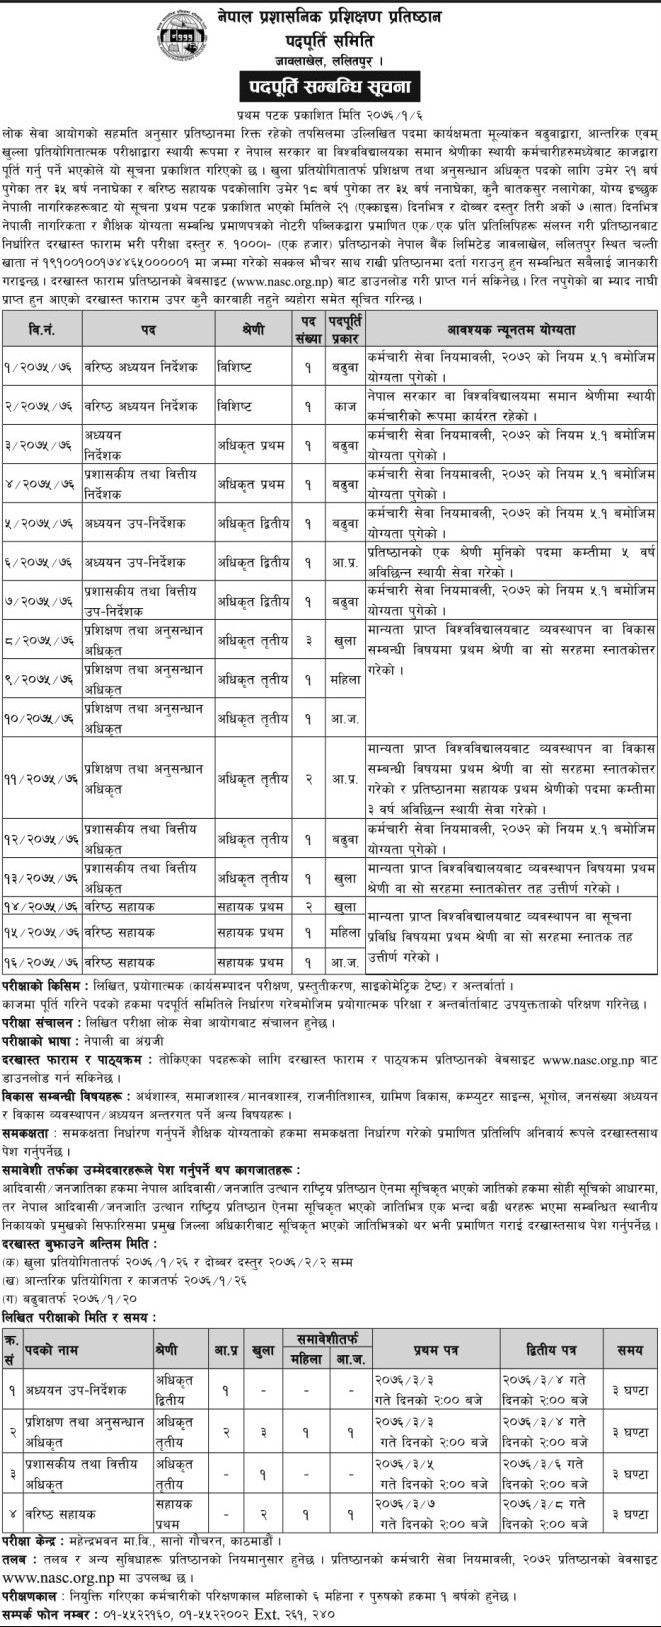 Multiple Positions Job Vacancy at Nepal Administrative Staff College (NASC)